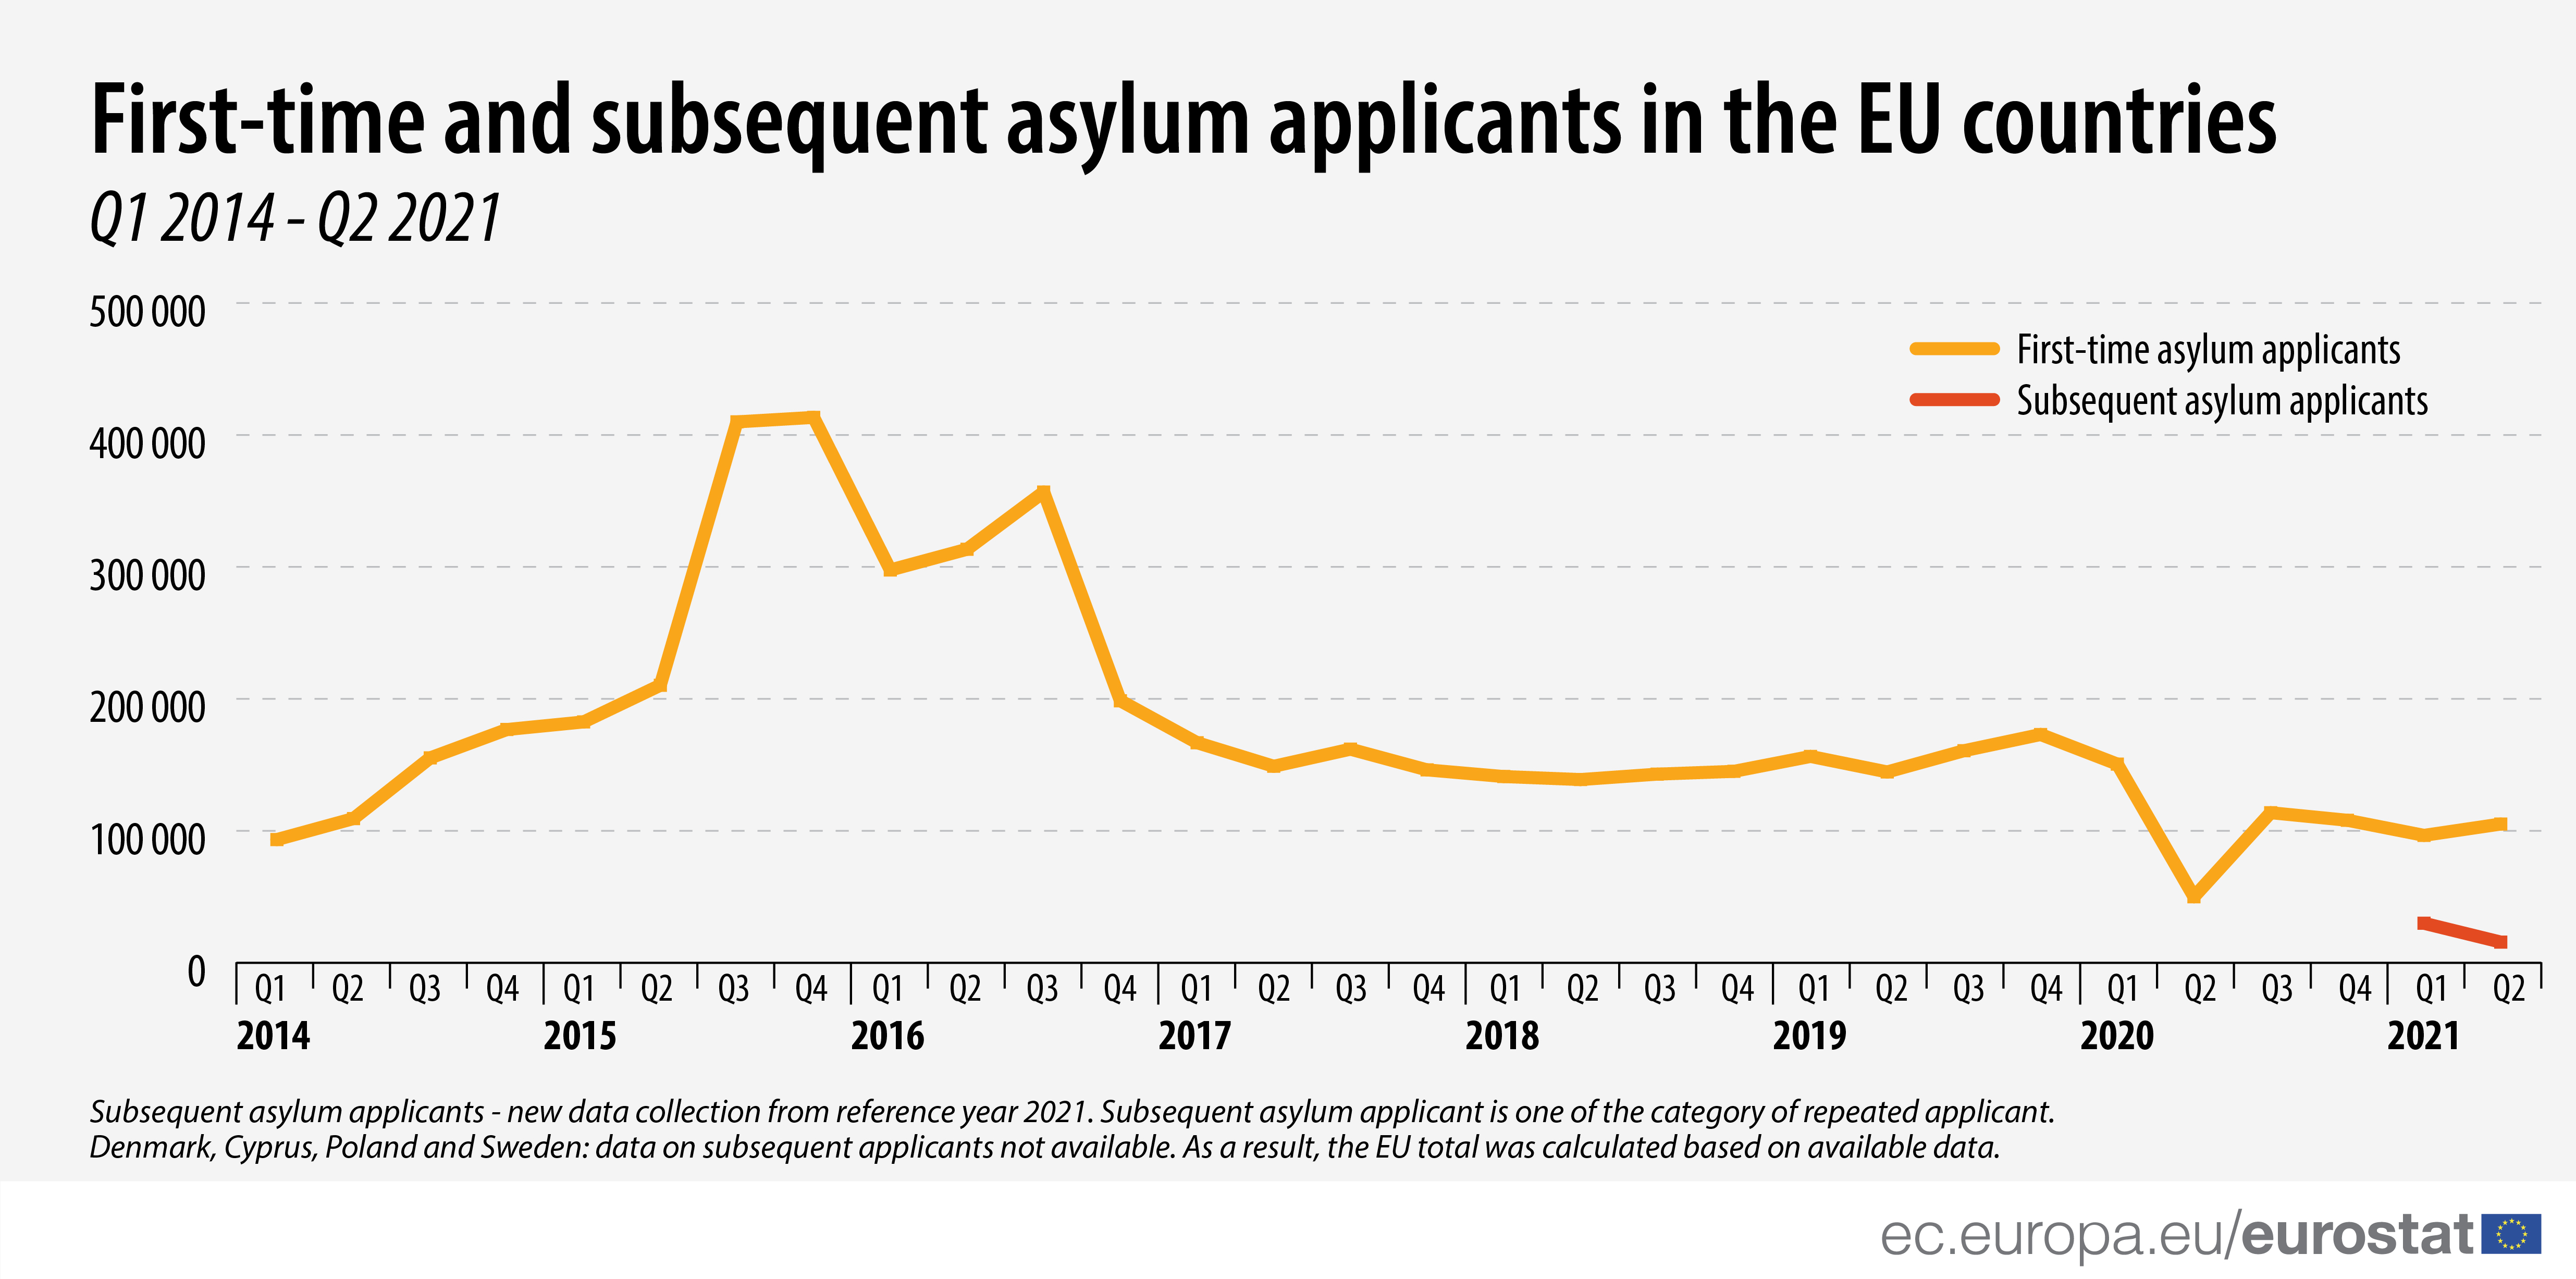 Line graph: First-time and subsequent asylum applicants in the EU countries, Q1 2014 to Q2 2021